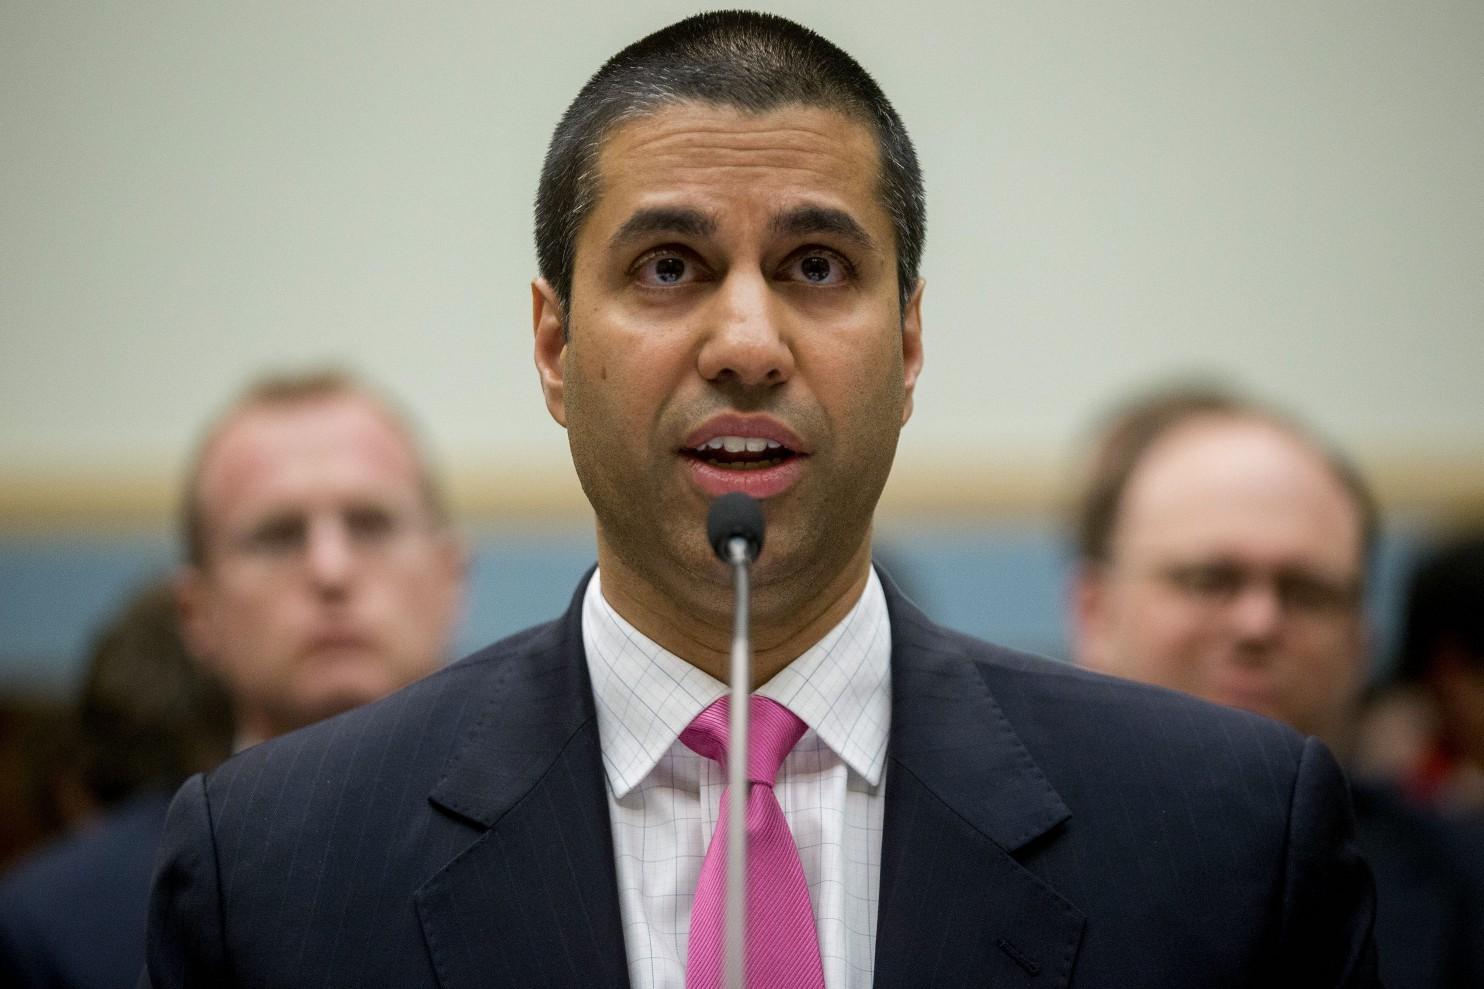 глава Федеральной комиссии по связи США Federal Communications Commission, FCC Аджит Пай (Ajit Pai)